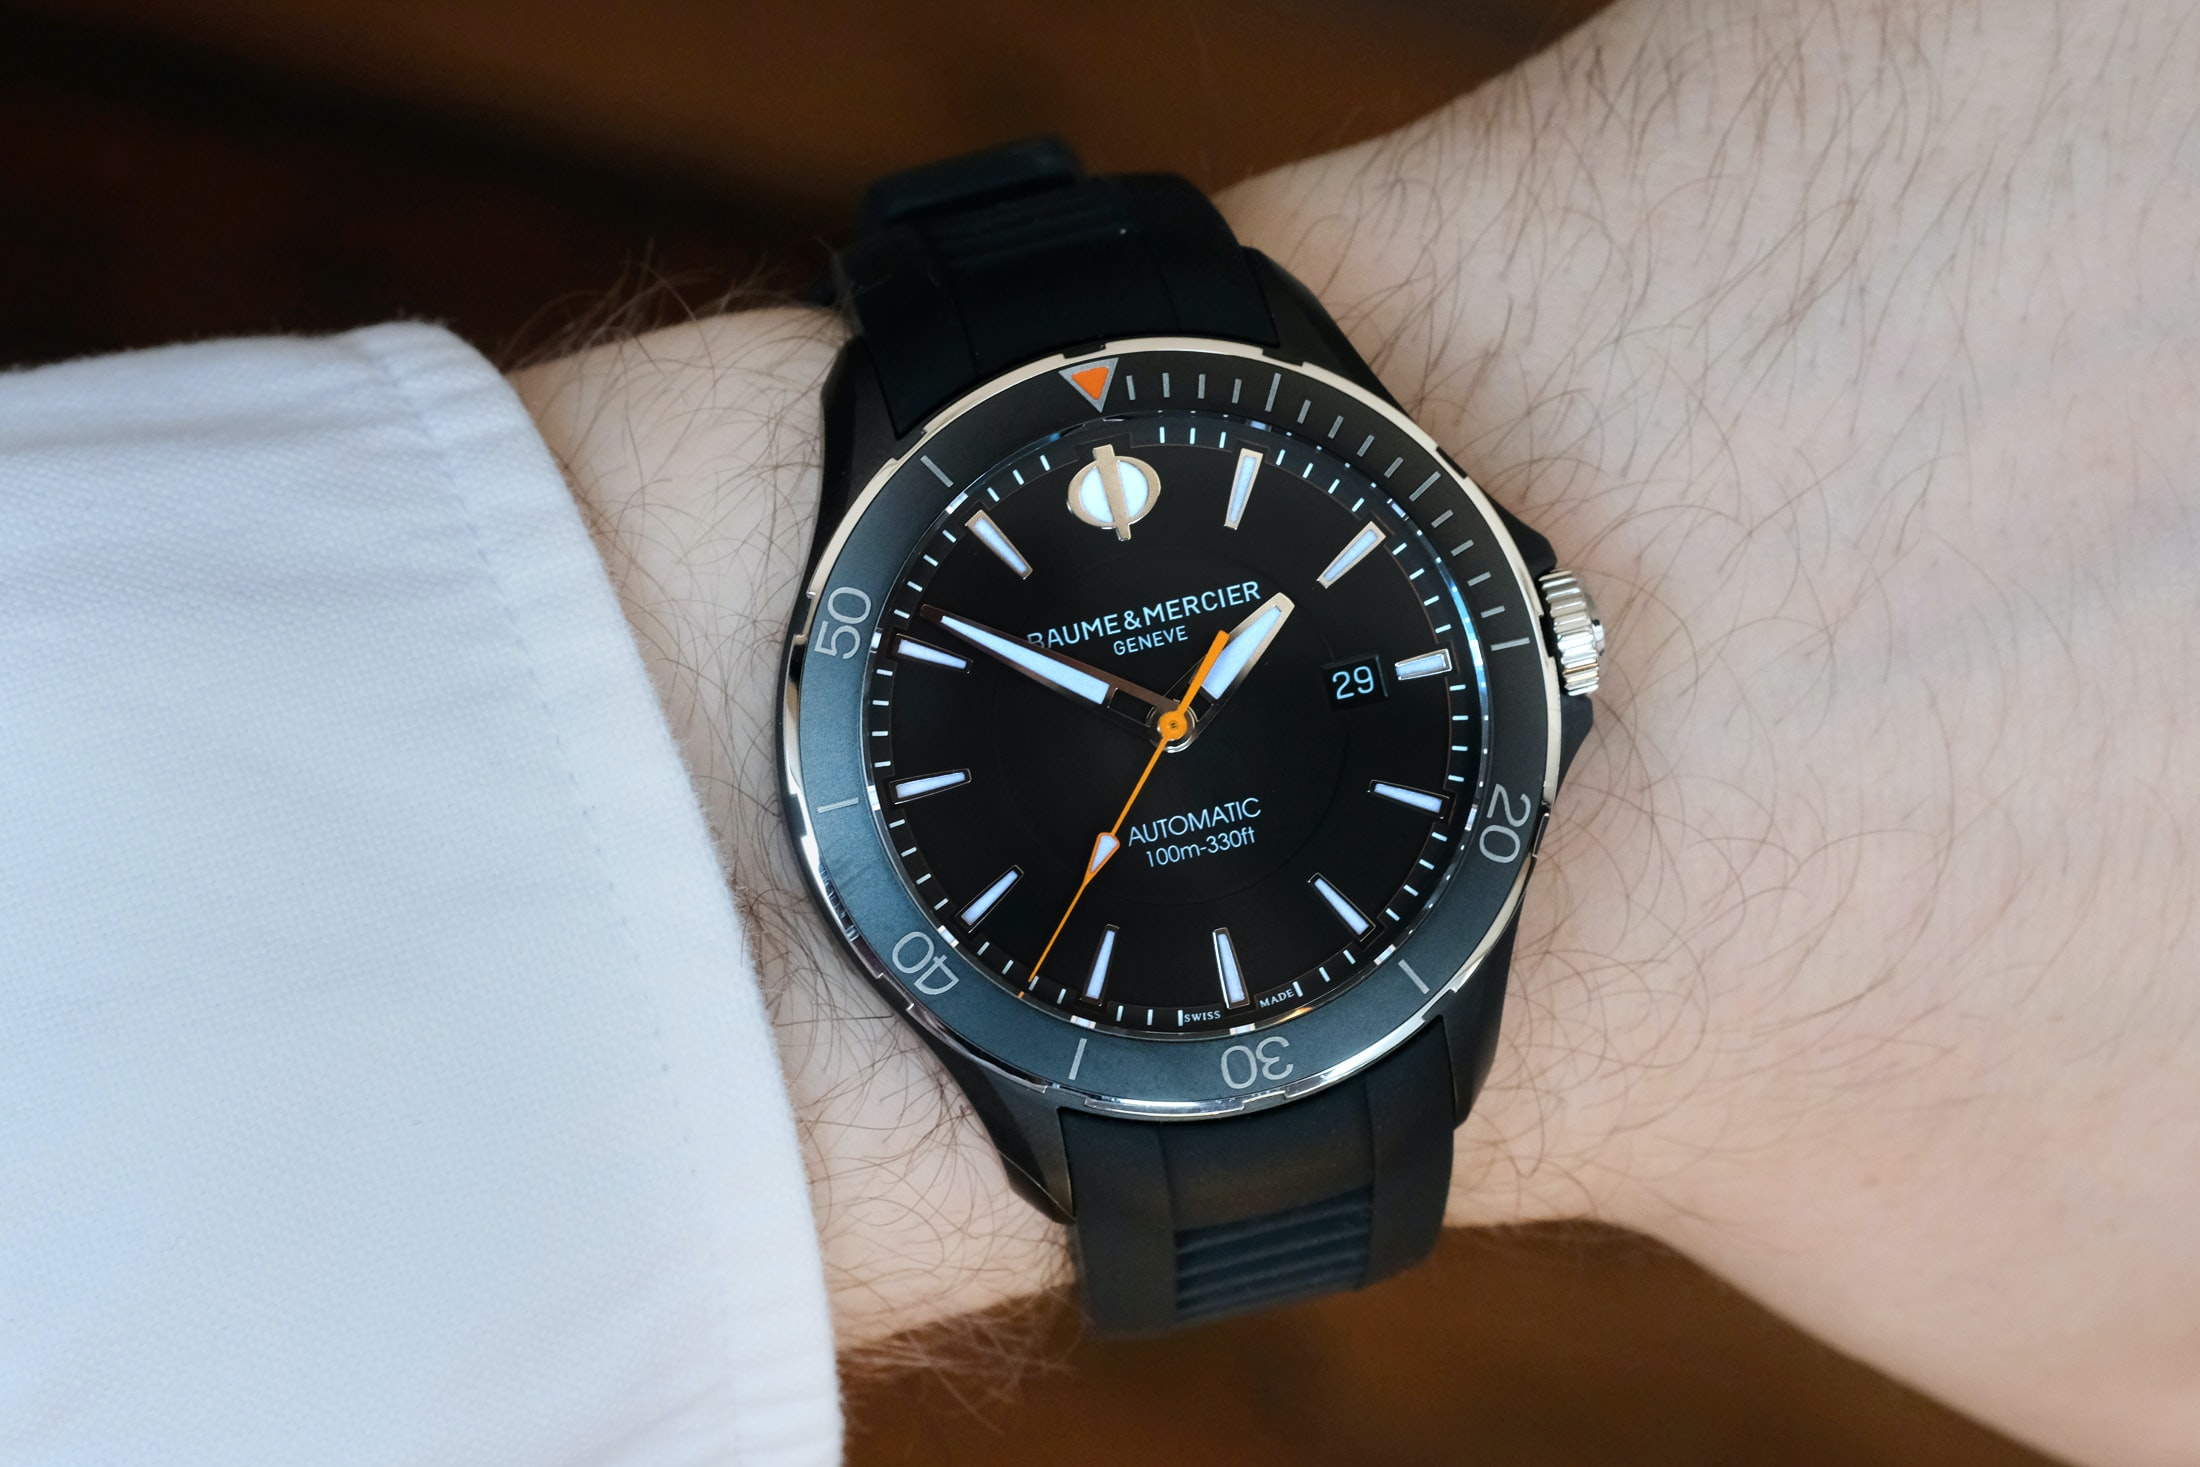 baume and mercier clifton club all black Hands-On: The Baume & Mercier Clifton Club Hands-On: The Baume & Mercier Clifton Club club 04